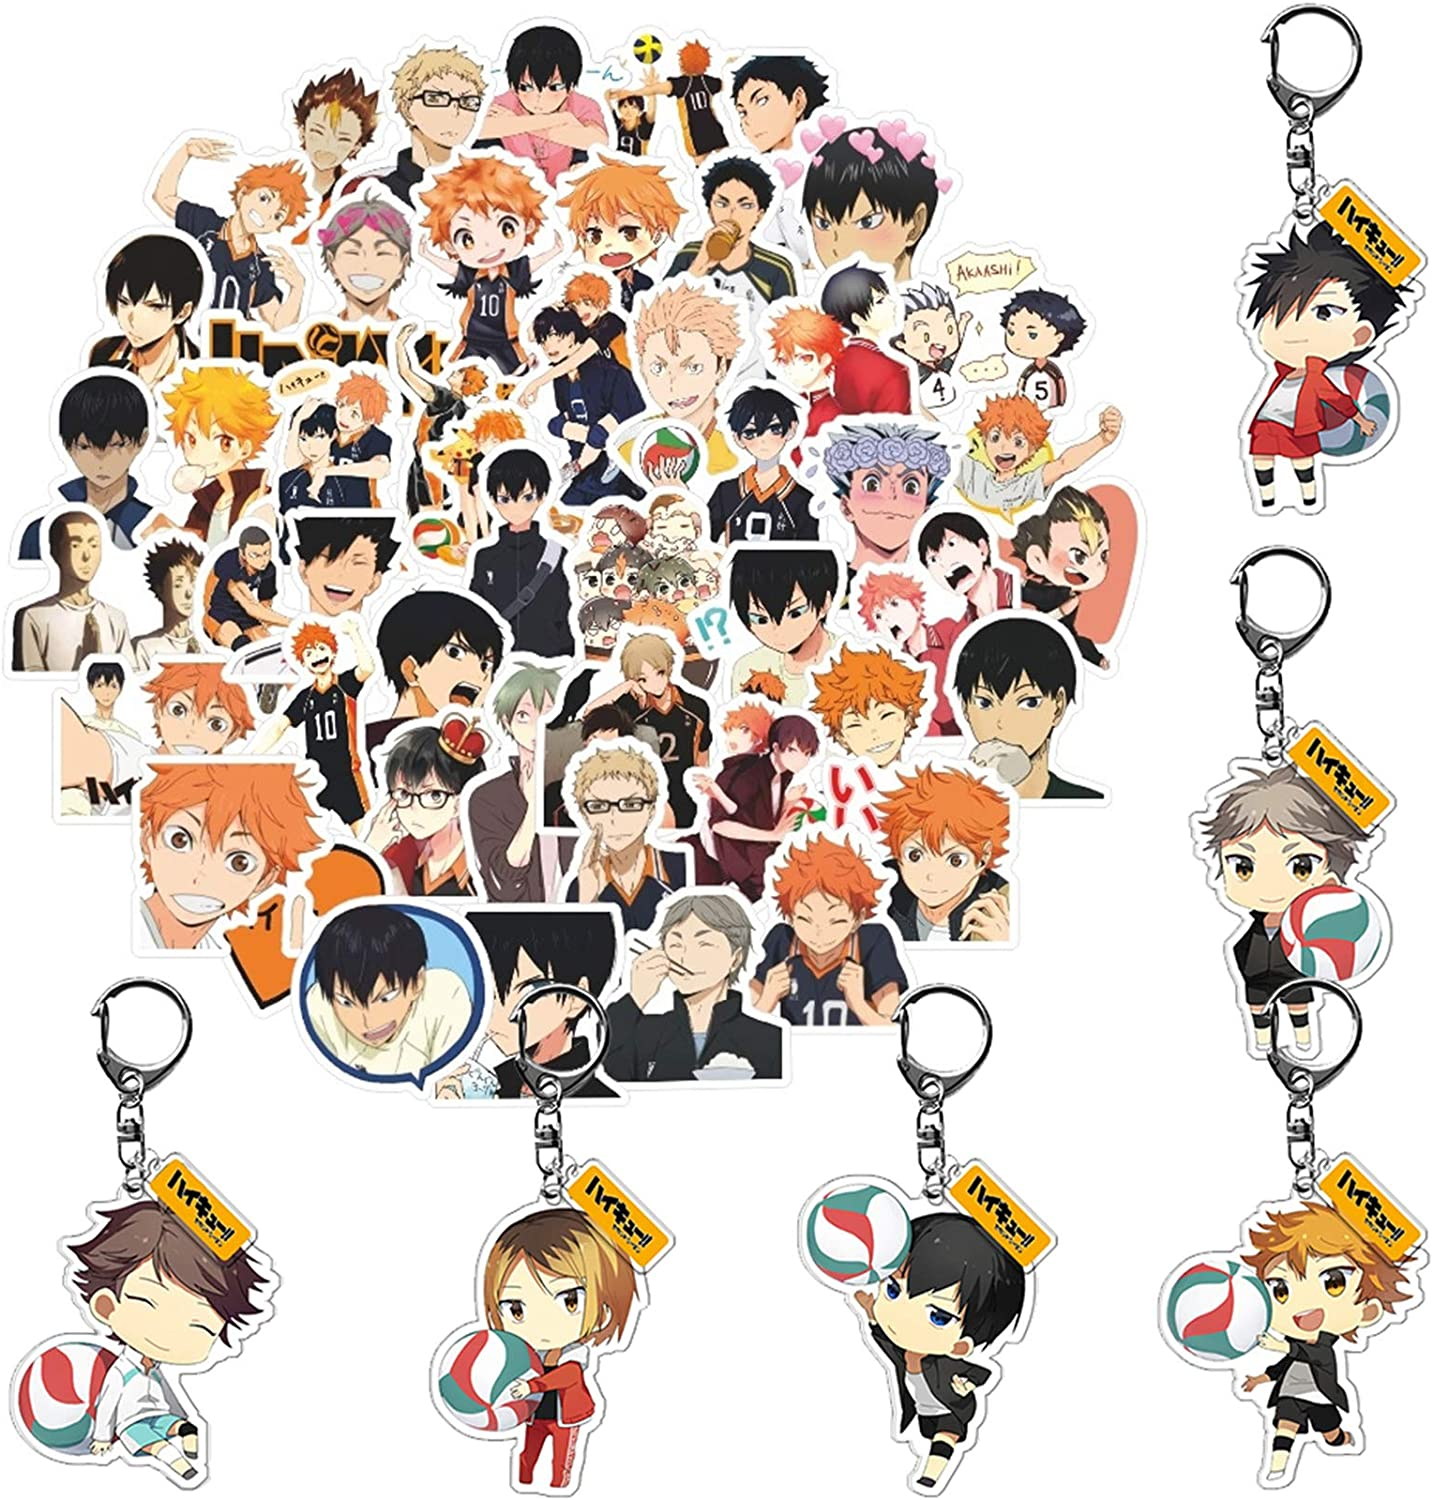 Haikyuu Stickers Keychains Pack of 50pcs Stickers 6pcs Keychains for Anime Fans Waterproof Durable Stickers for Laptop Water Bottle Skateboard Bicycle Luggage Notebook Phone Case